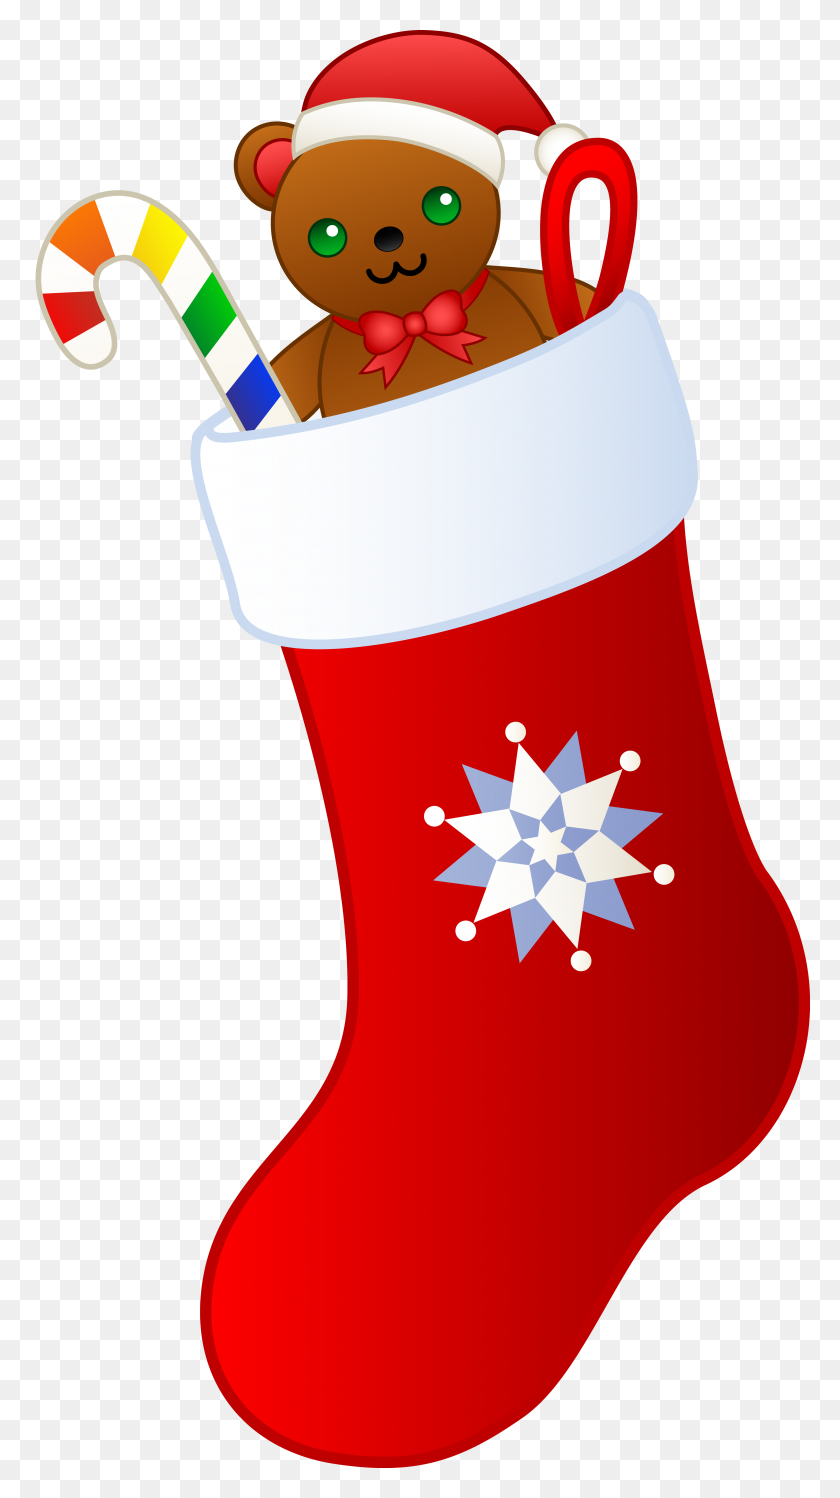 Christmas Stockings Clipart Group With Items - Simple Christmas Clipart